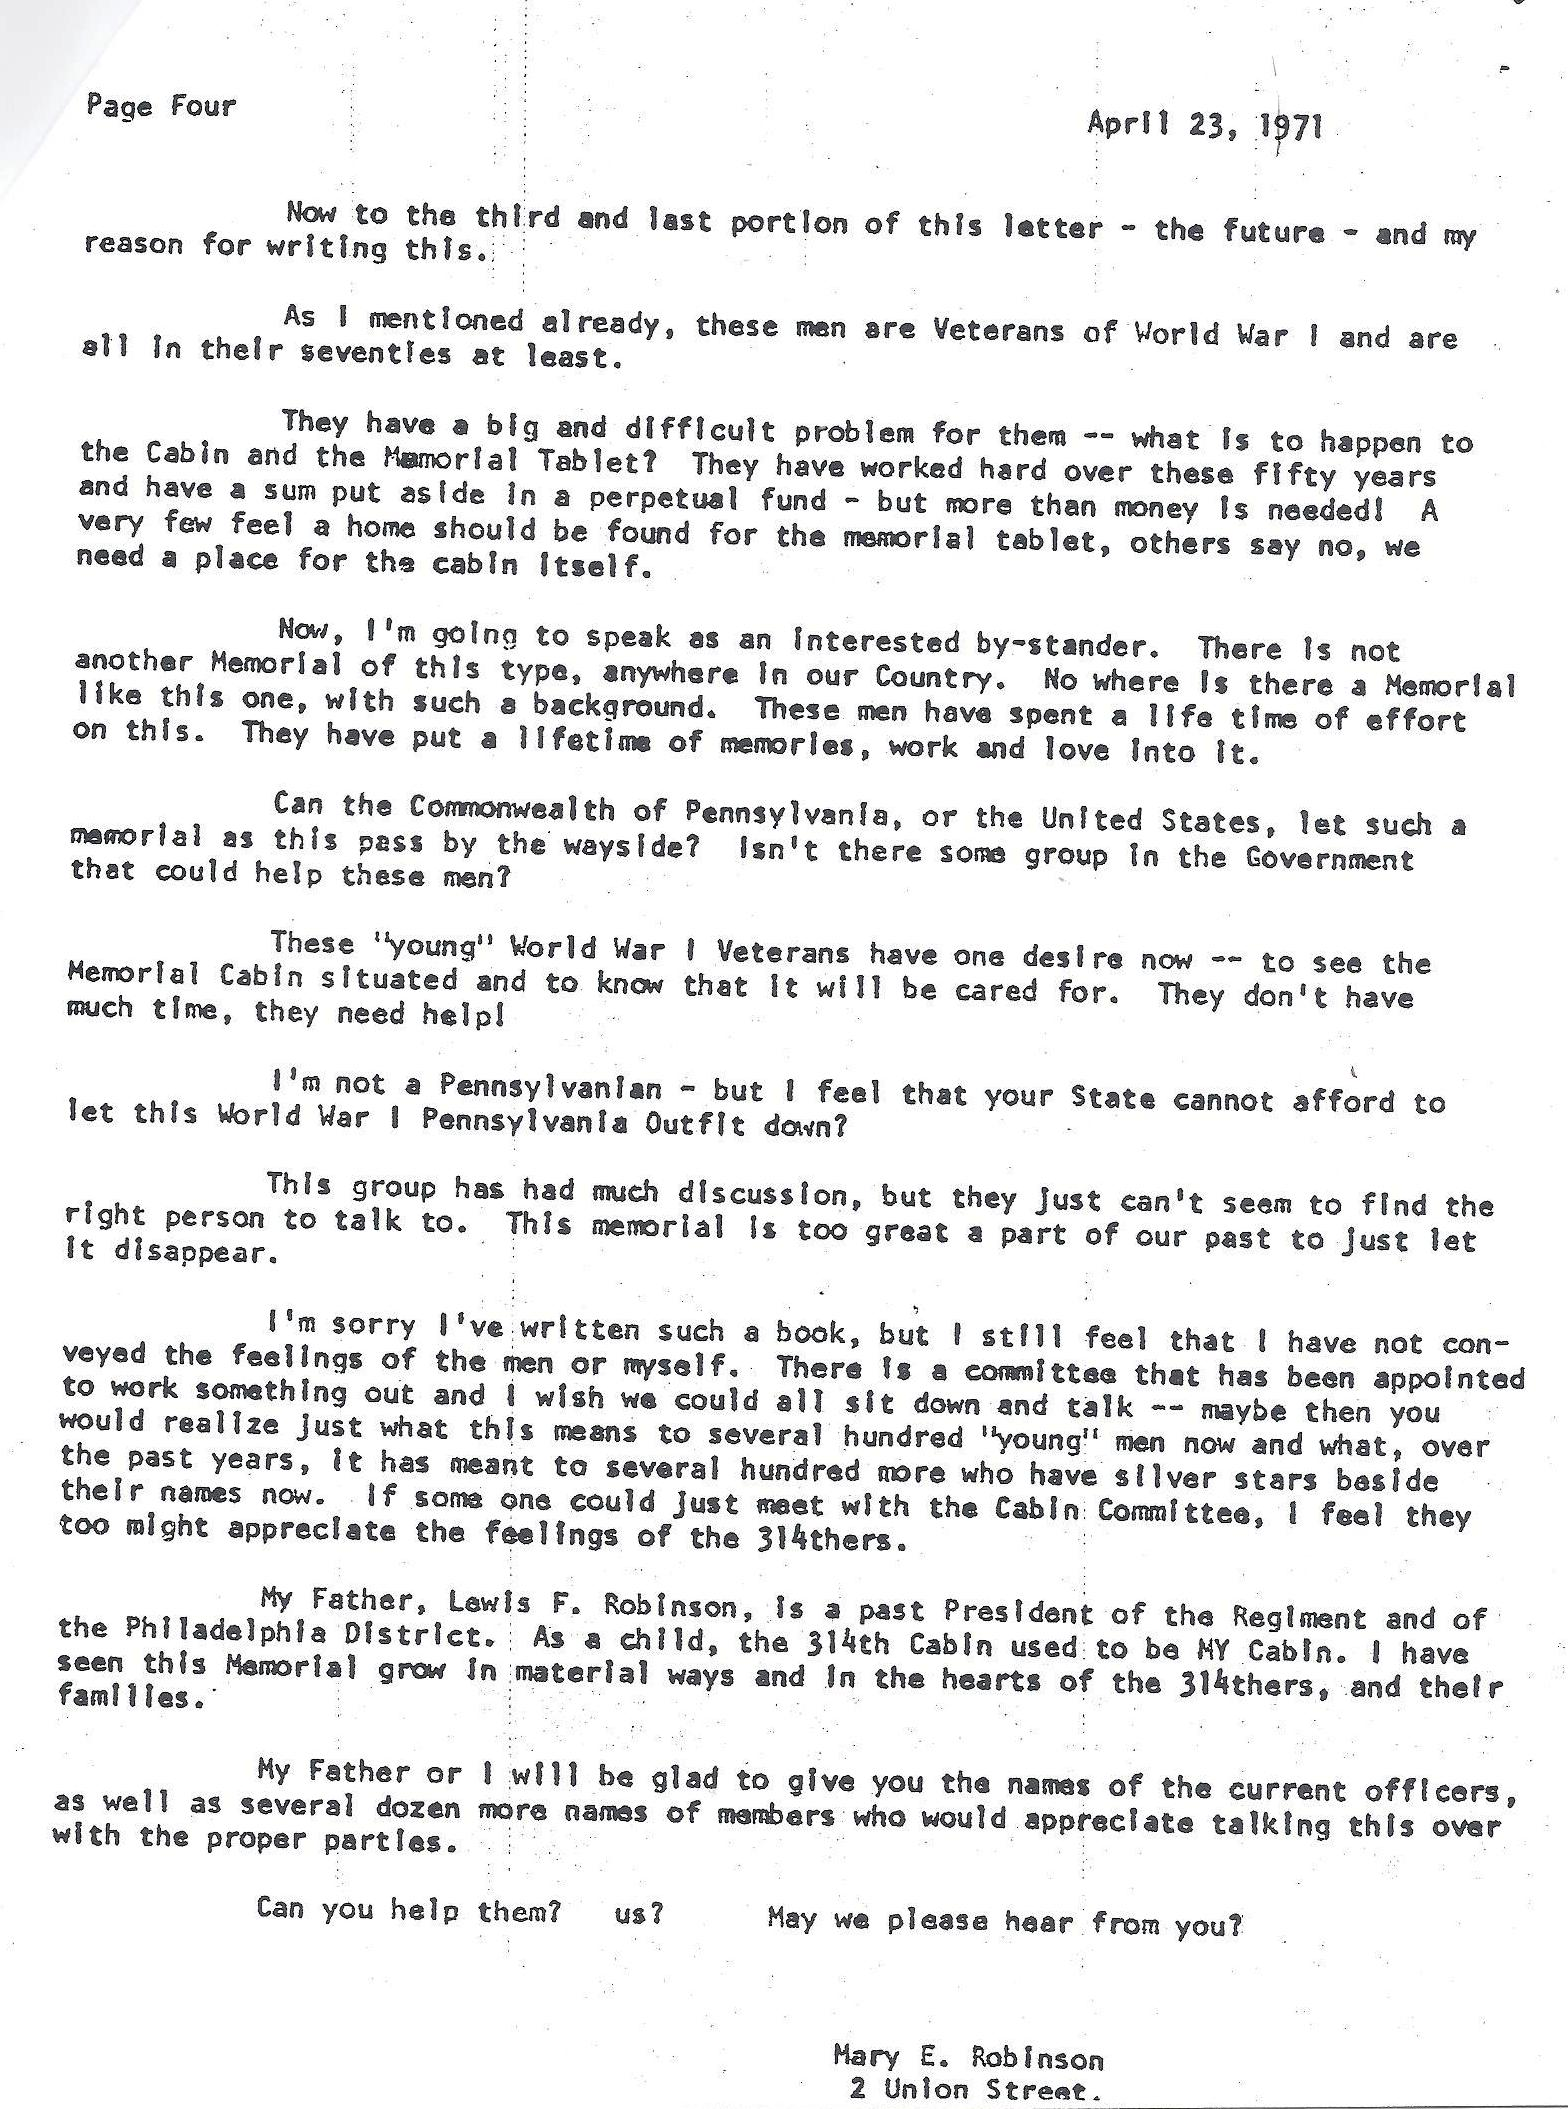 Log Cabin Memorial - Veterans 314th Infantry Regiment A.E.F. - Mary E. Robinson Letter - 1970 - Page 4